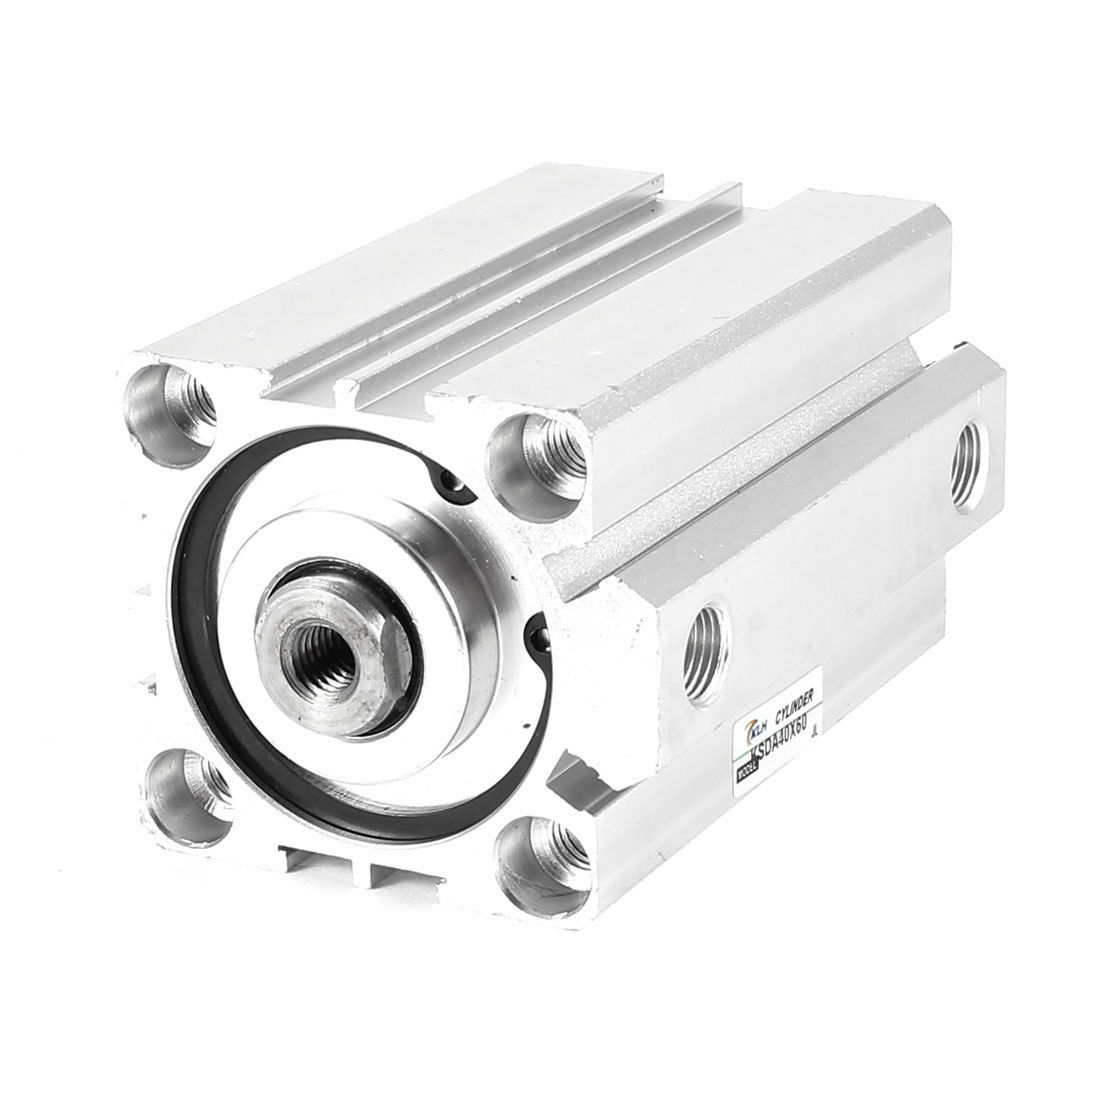 1 Pcs 50mm Bore 50mm Stroke Stainless steel Pneumatic Air Cylinder SDA50-50 1 pcs 50mm bore 25mm stroke stainless steel pneumatic air cylinder sda50 25